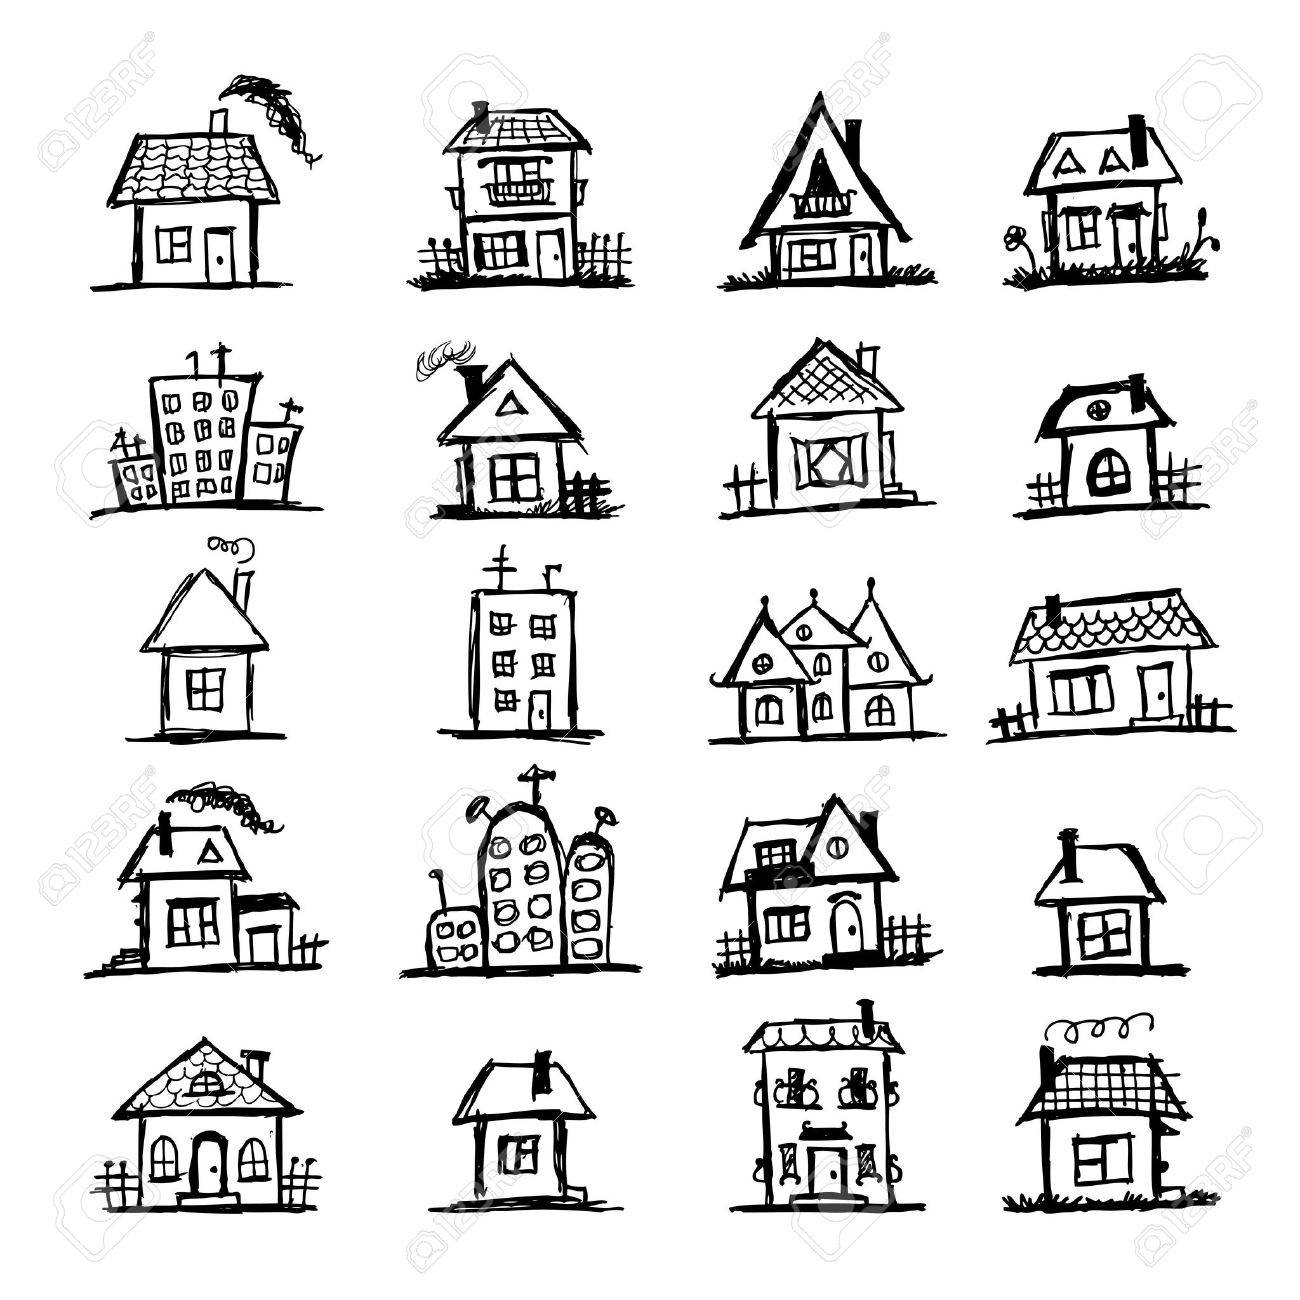 sketch of art houses for your design royalty free cliparts